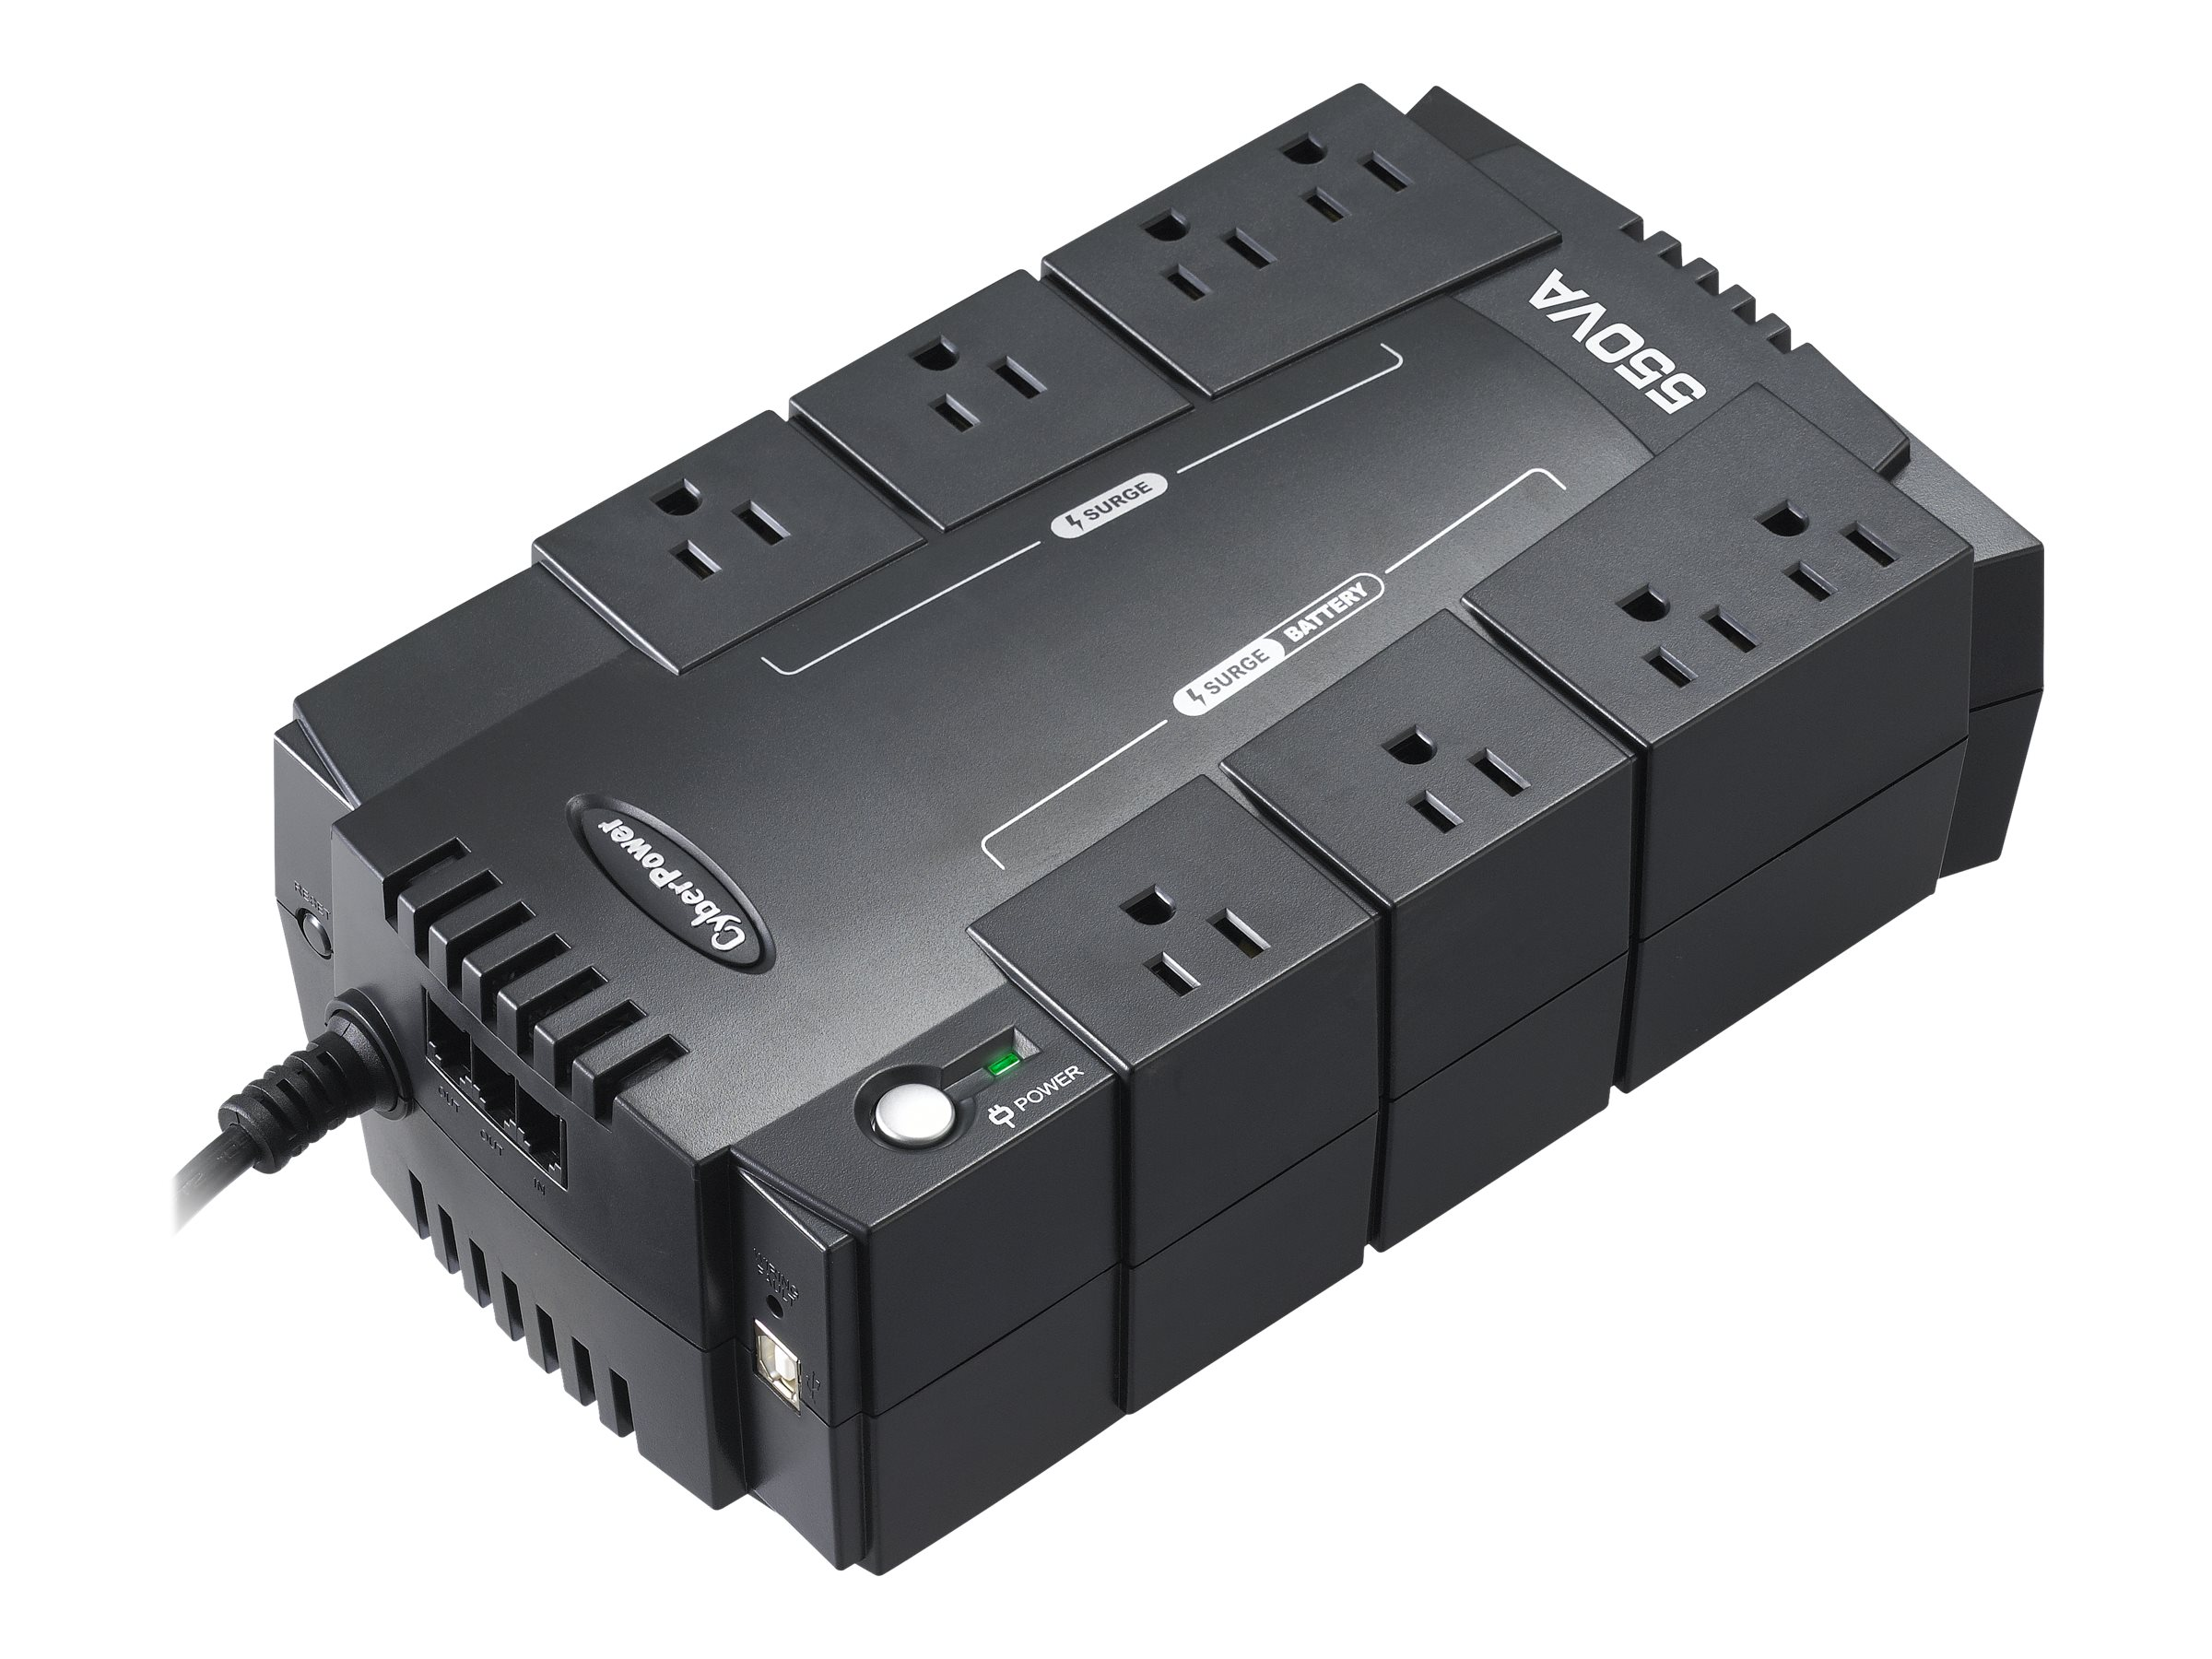 CyberPower 550VA Standby Green UPS (8) 5-15R Outlets USB, Management Software, CP550SLG